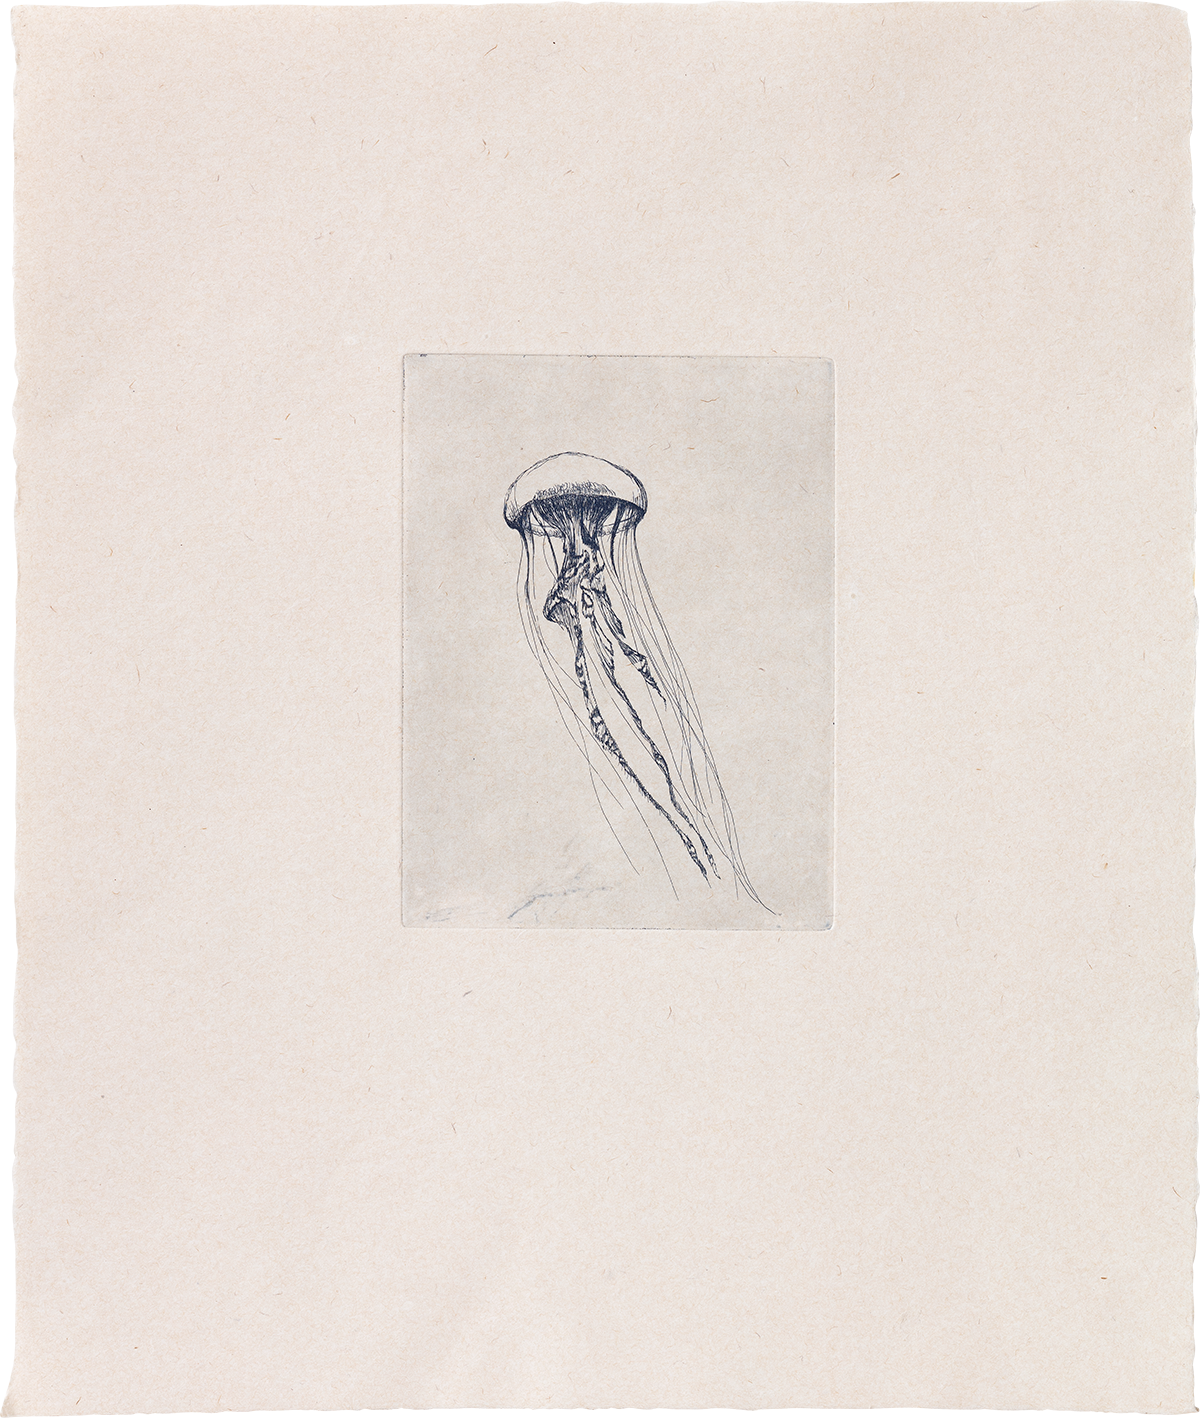 Totem Jellyfish (I) - Etching